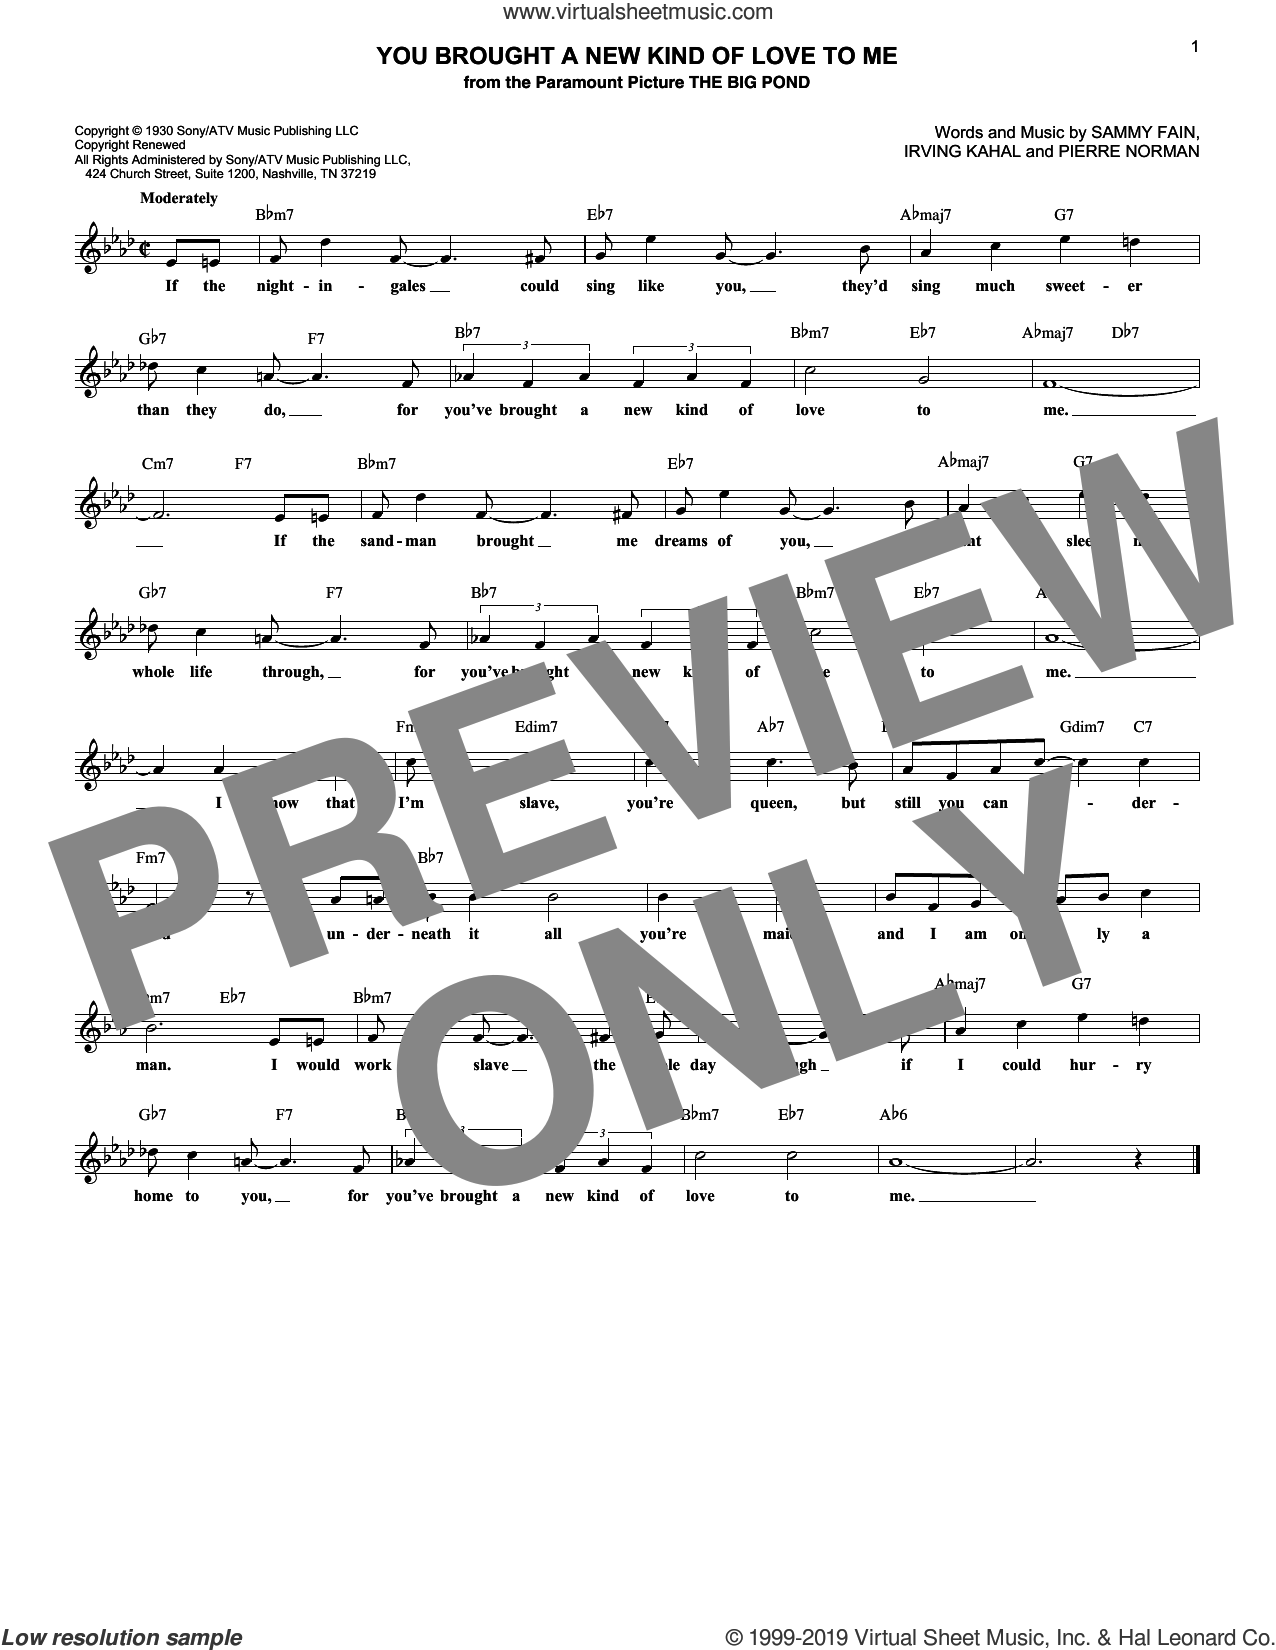 You Brought A New Kind Of Love To Me sheet music for voice and other instruments (fake book) by Scott Hamilton, Irving Kahal, Pierre Norman and Sammy Fain, intermediate skill level